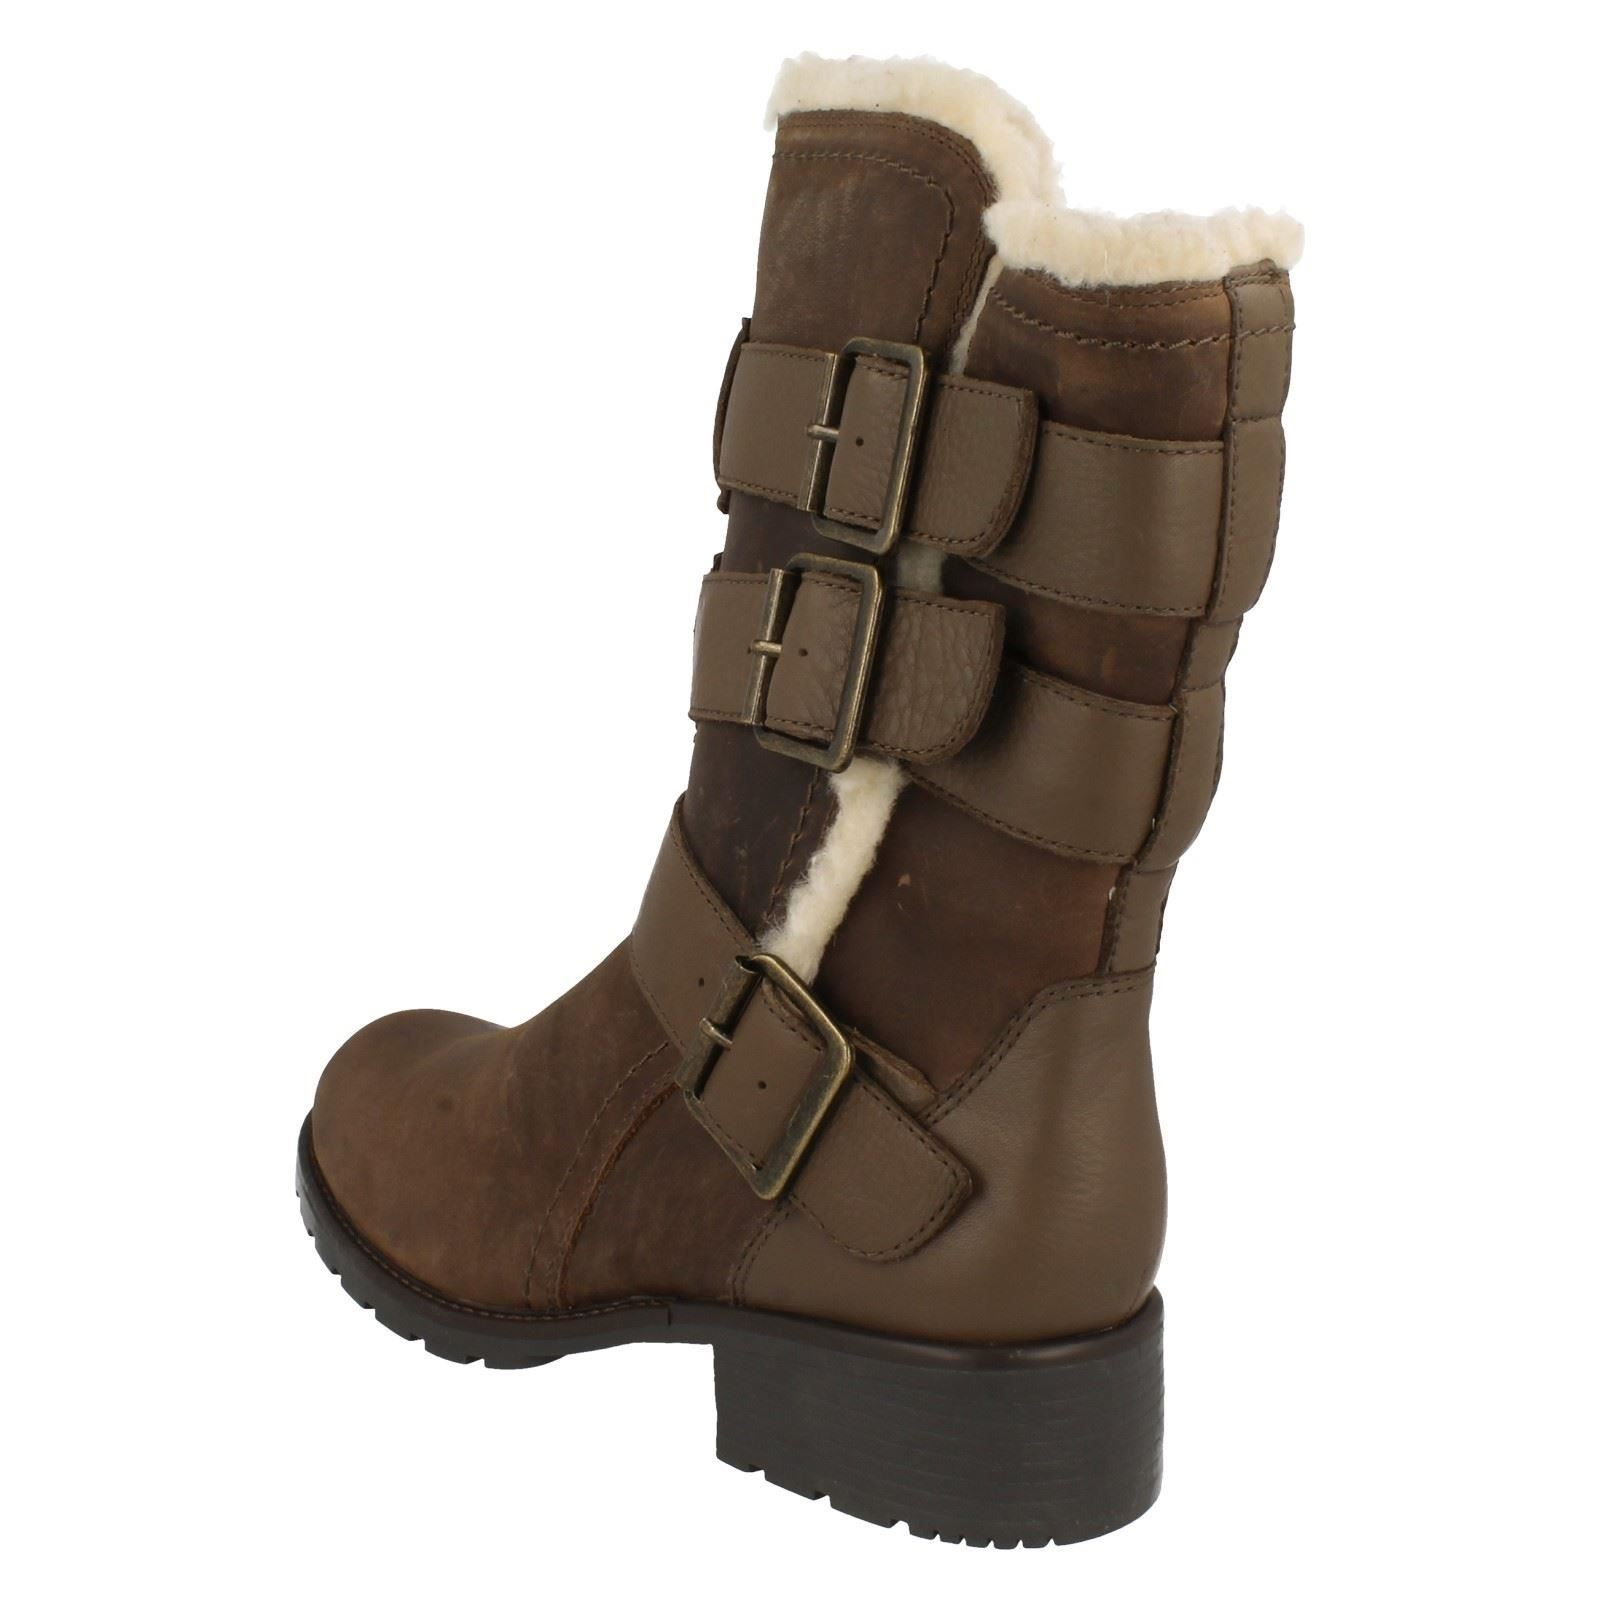 Ladies-Clarks-Casual-Utility-Style-Boots-Orinoco-Bloom